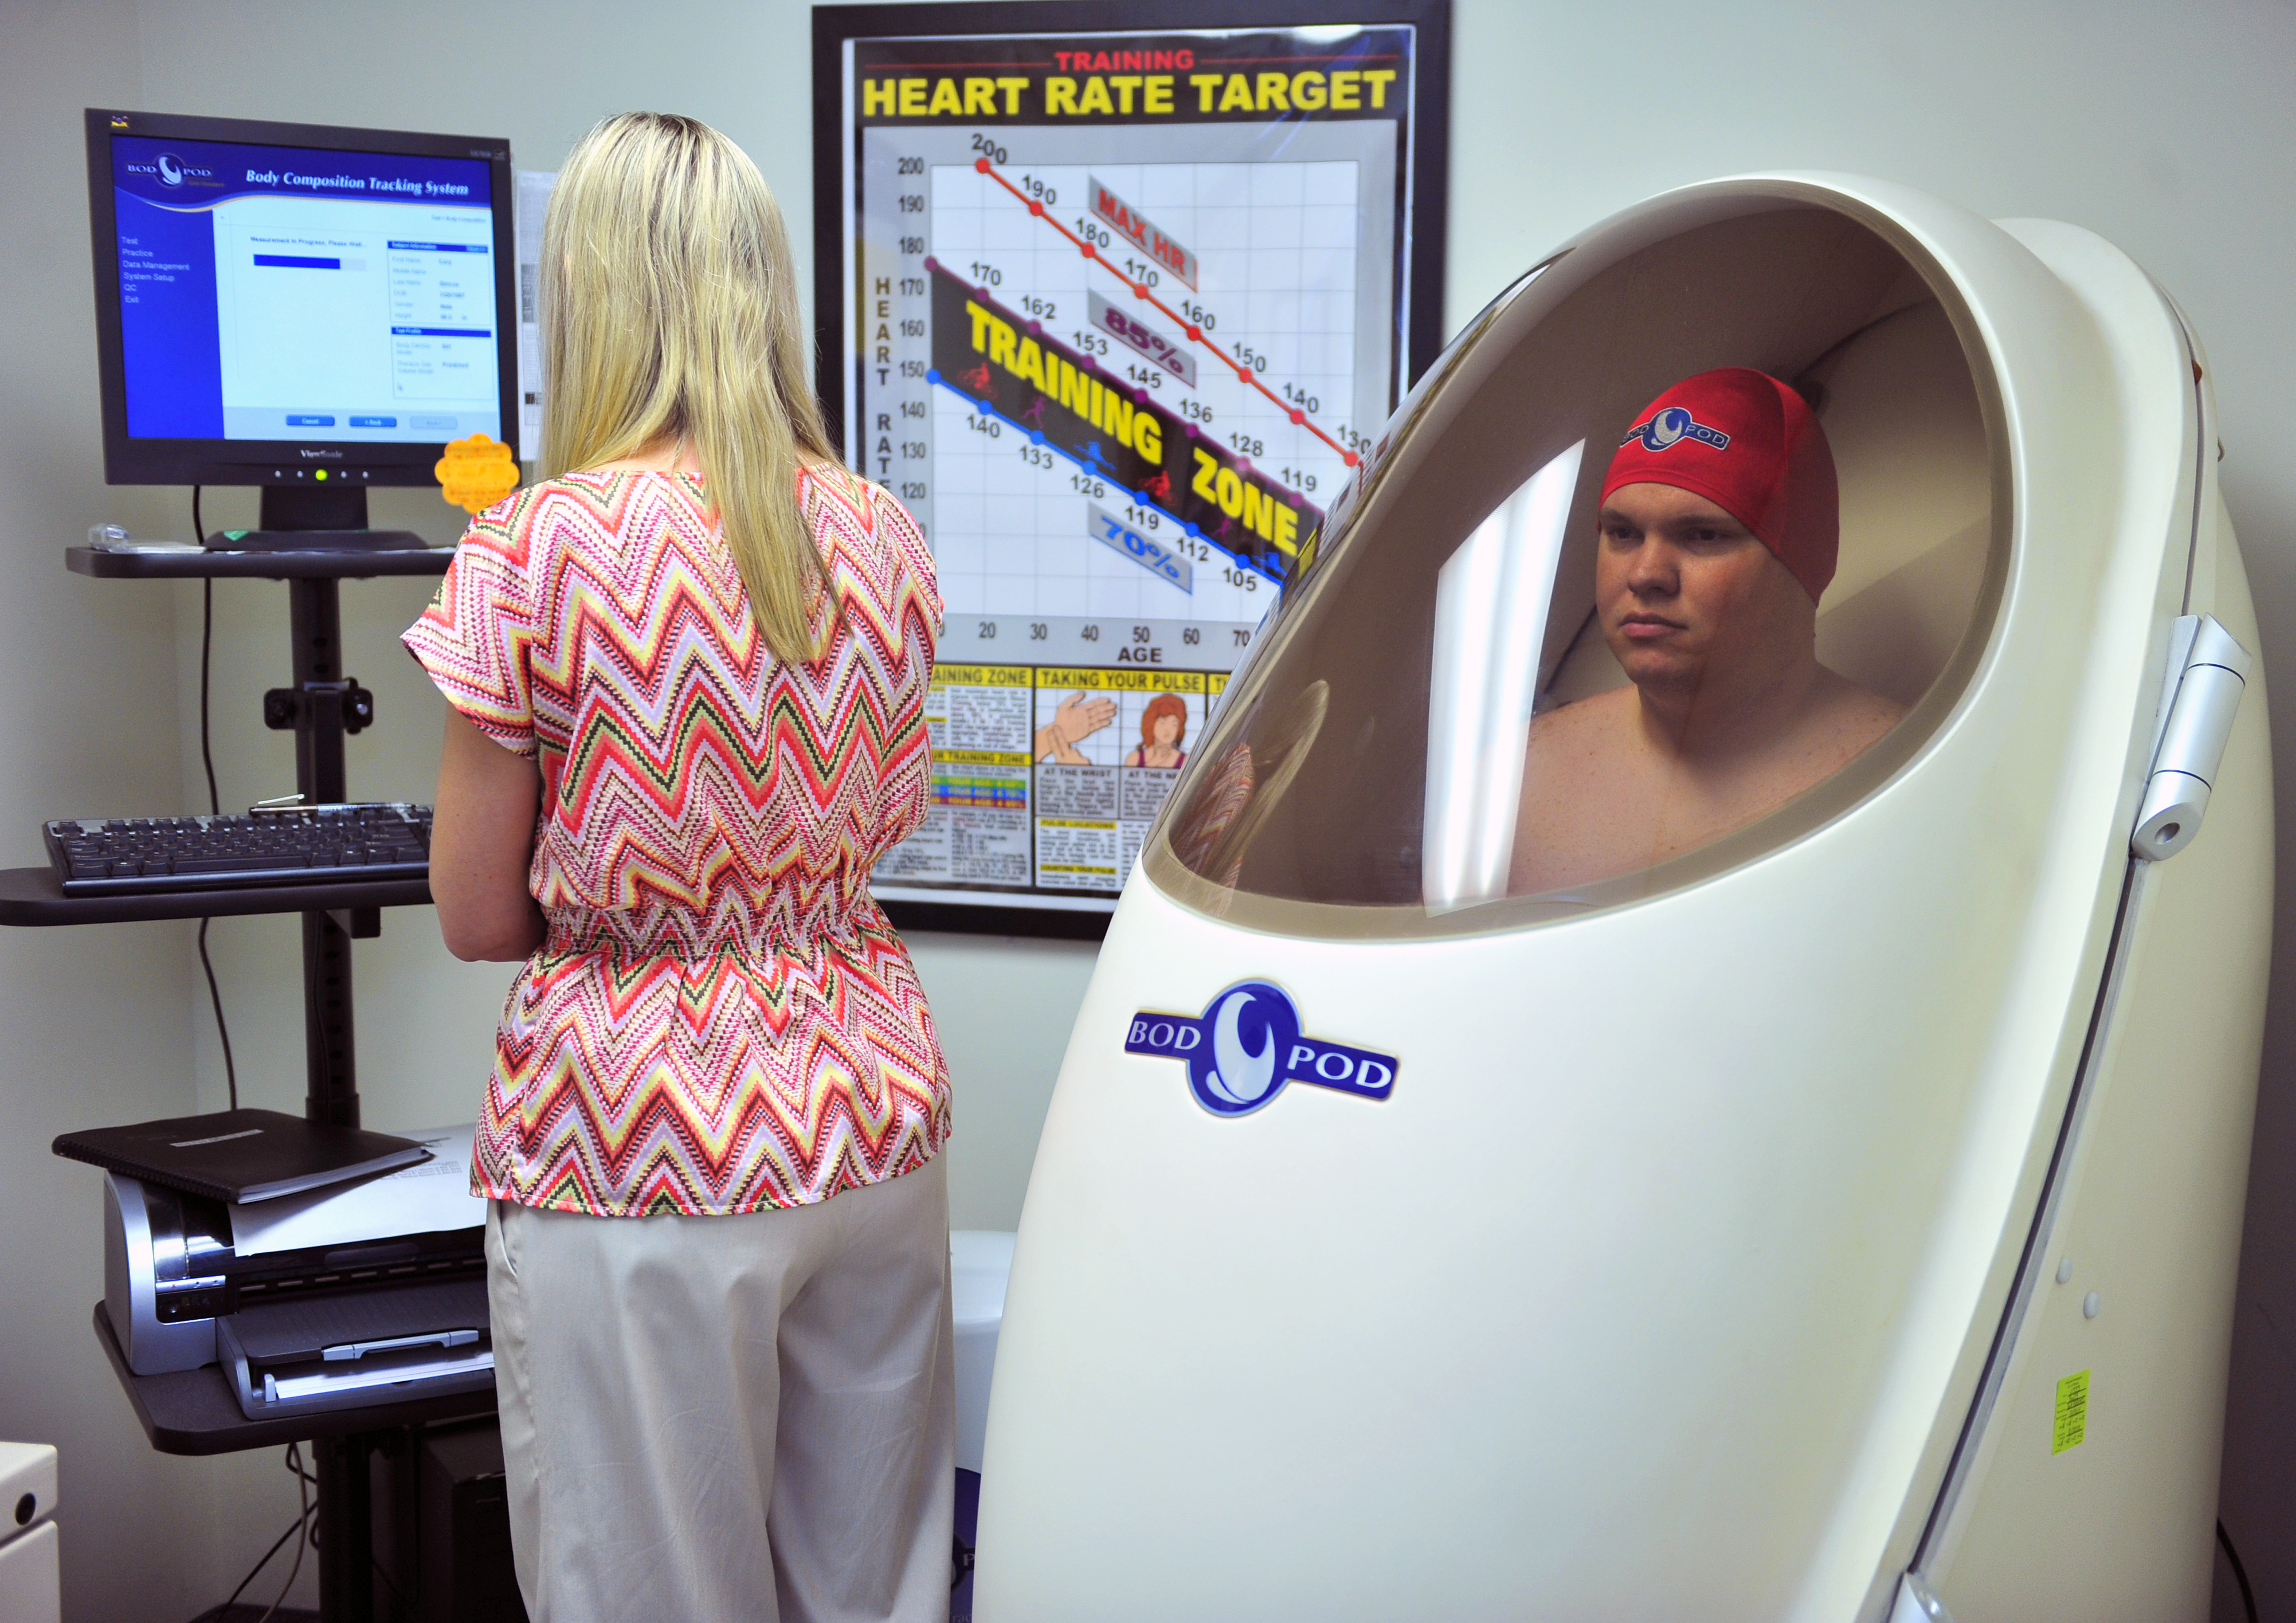 U S Air Force Staff Sgt Cory Simcoe C Aerospace Ground Equipment Journeyman With The Th Equipment Maintenance Squadron C Sits In A Bod Pod While Penny Hardin C Health Promotion Flight Chief With The Th F Da on Health Promotion